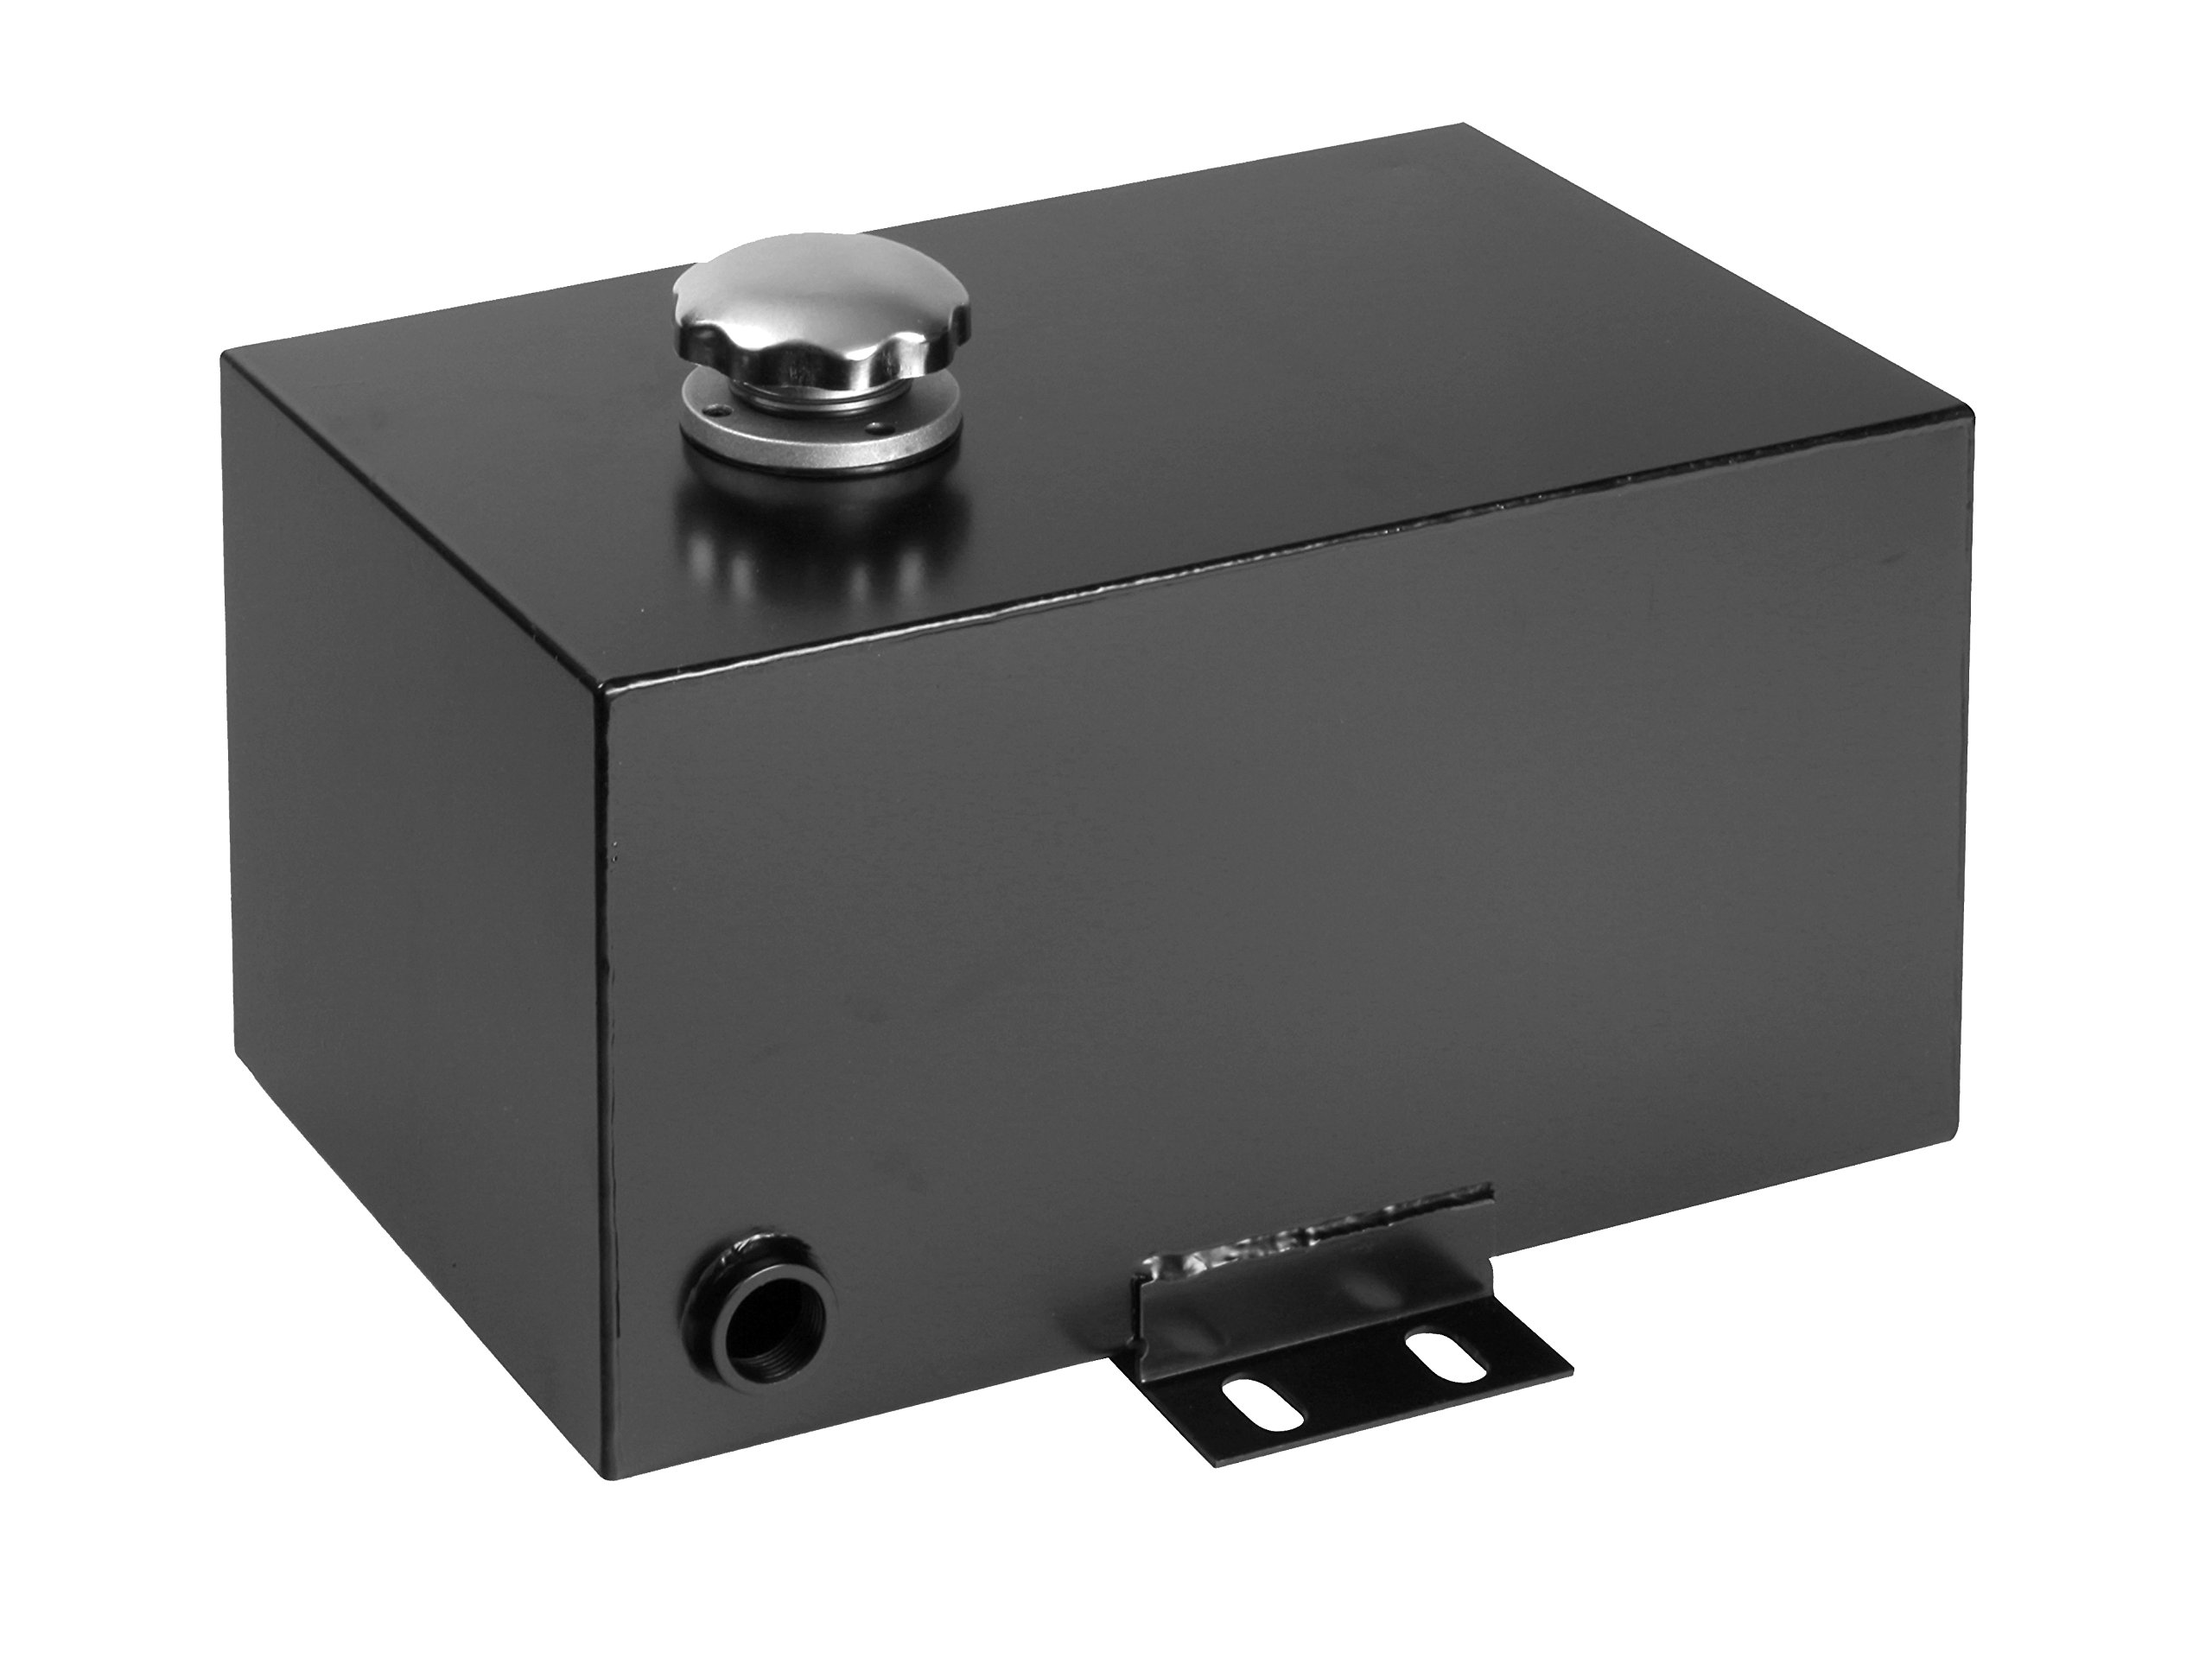 Delavan HYDRES-5 PowerMAX 5 Gallon Steel Hydraulic Reservoir Tank with Inlet 1-1/2'' FNPT and Outlet 3/4'' FNPT